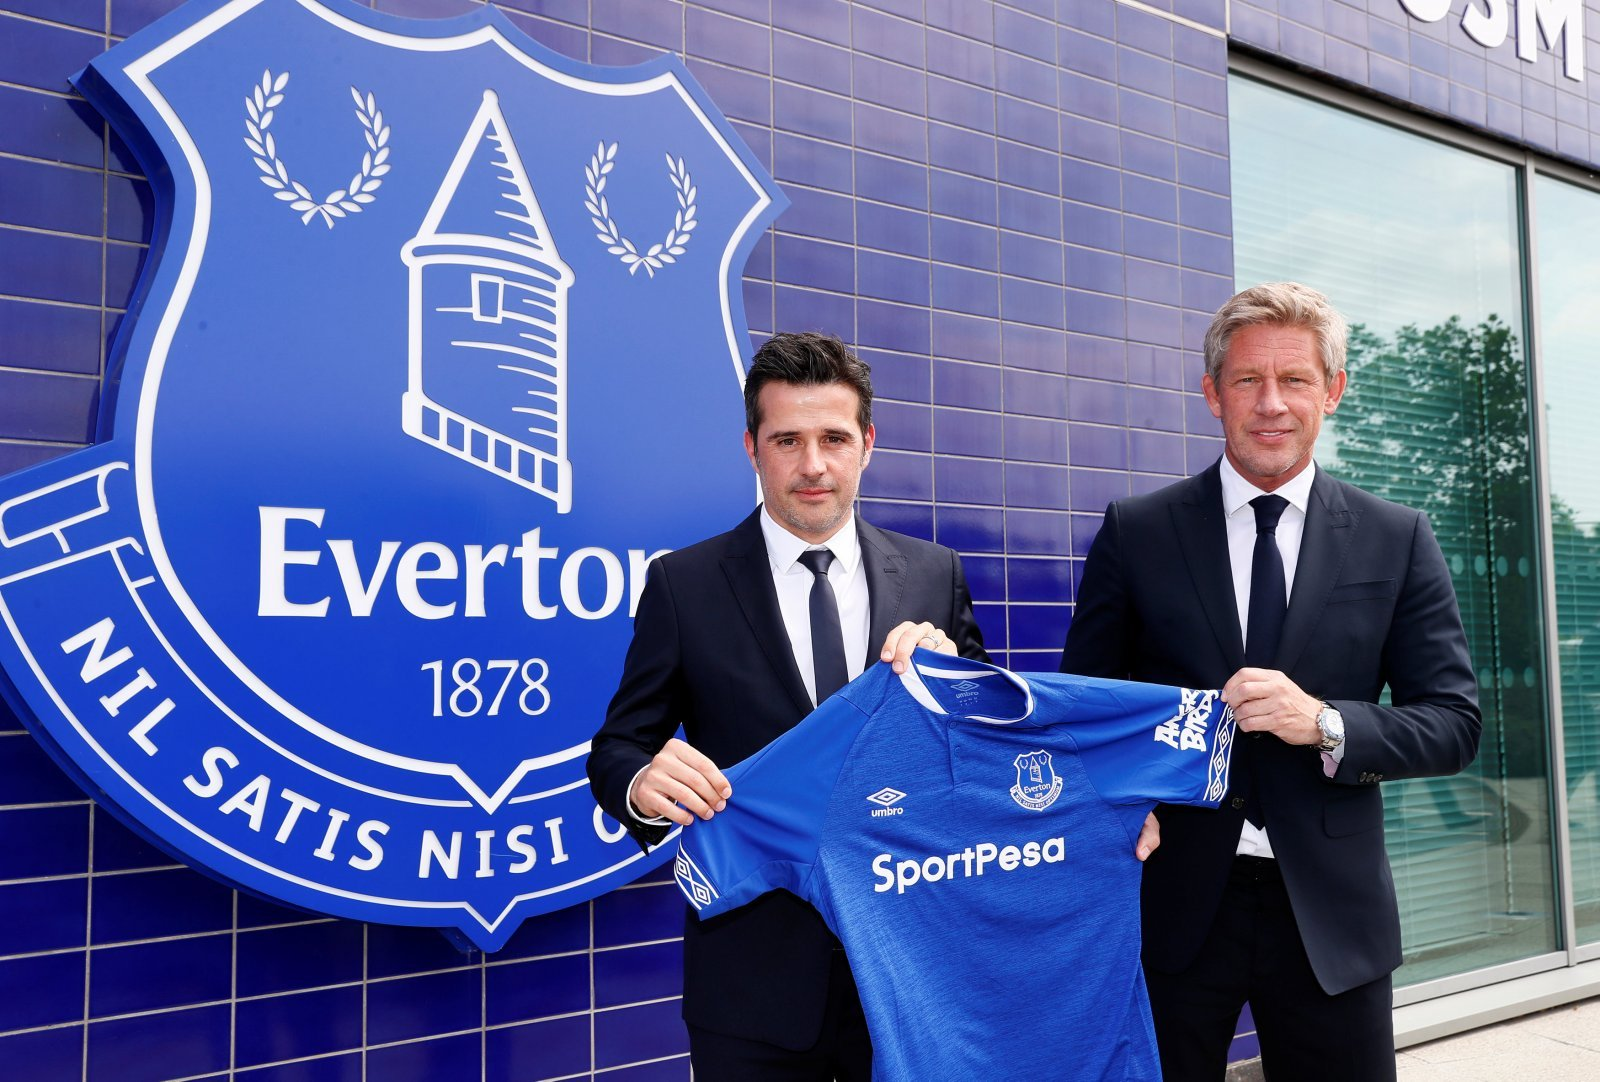 Marco Silva can finally crack the Premier League top four with Everton after an excellent window